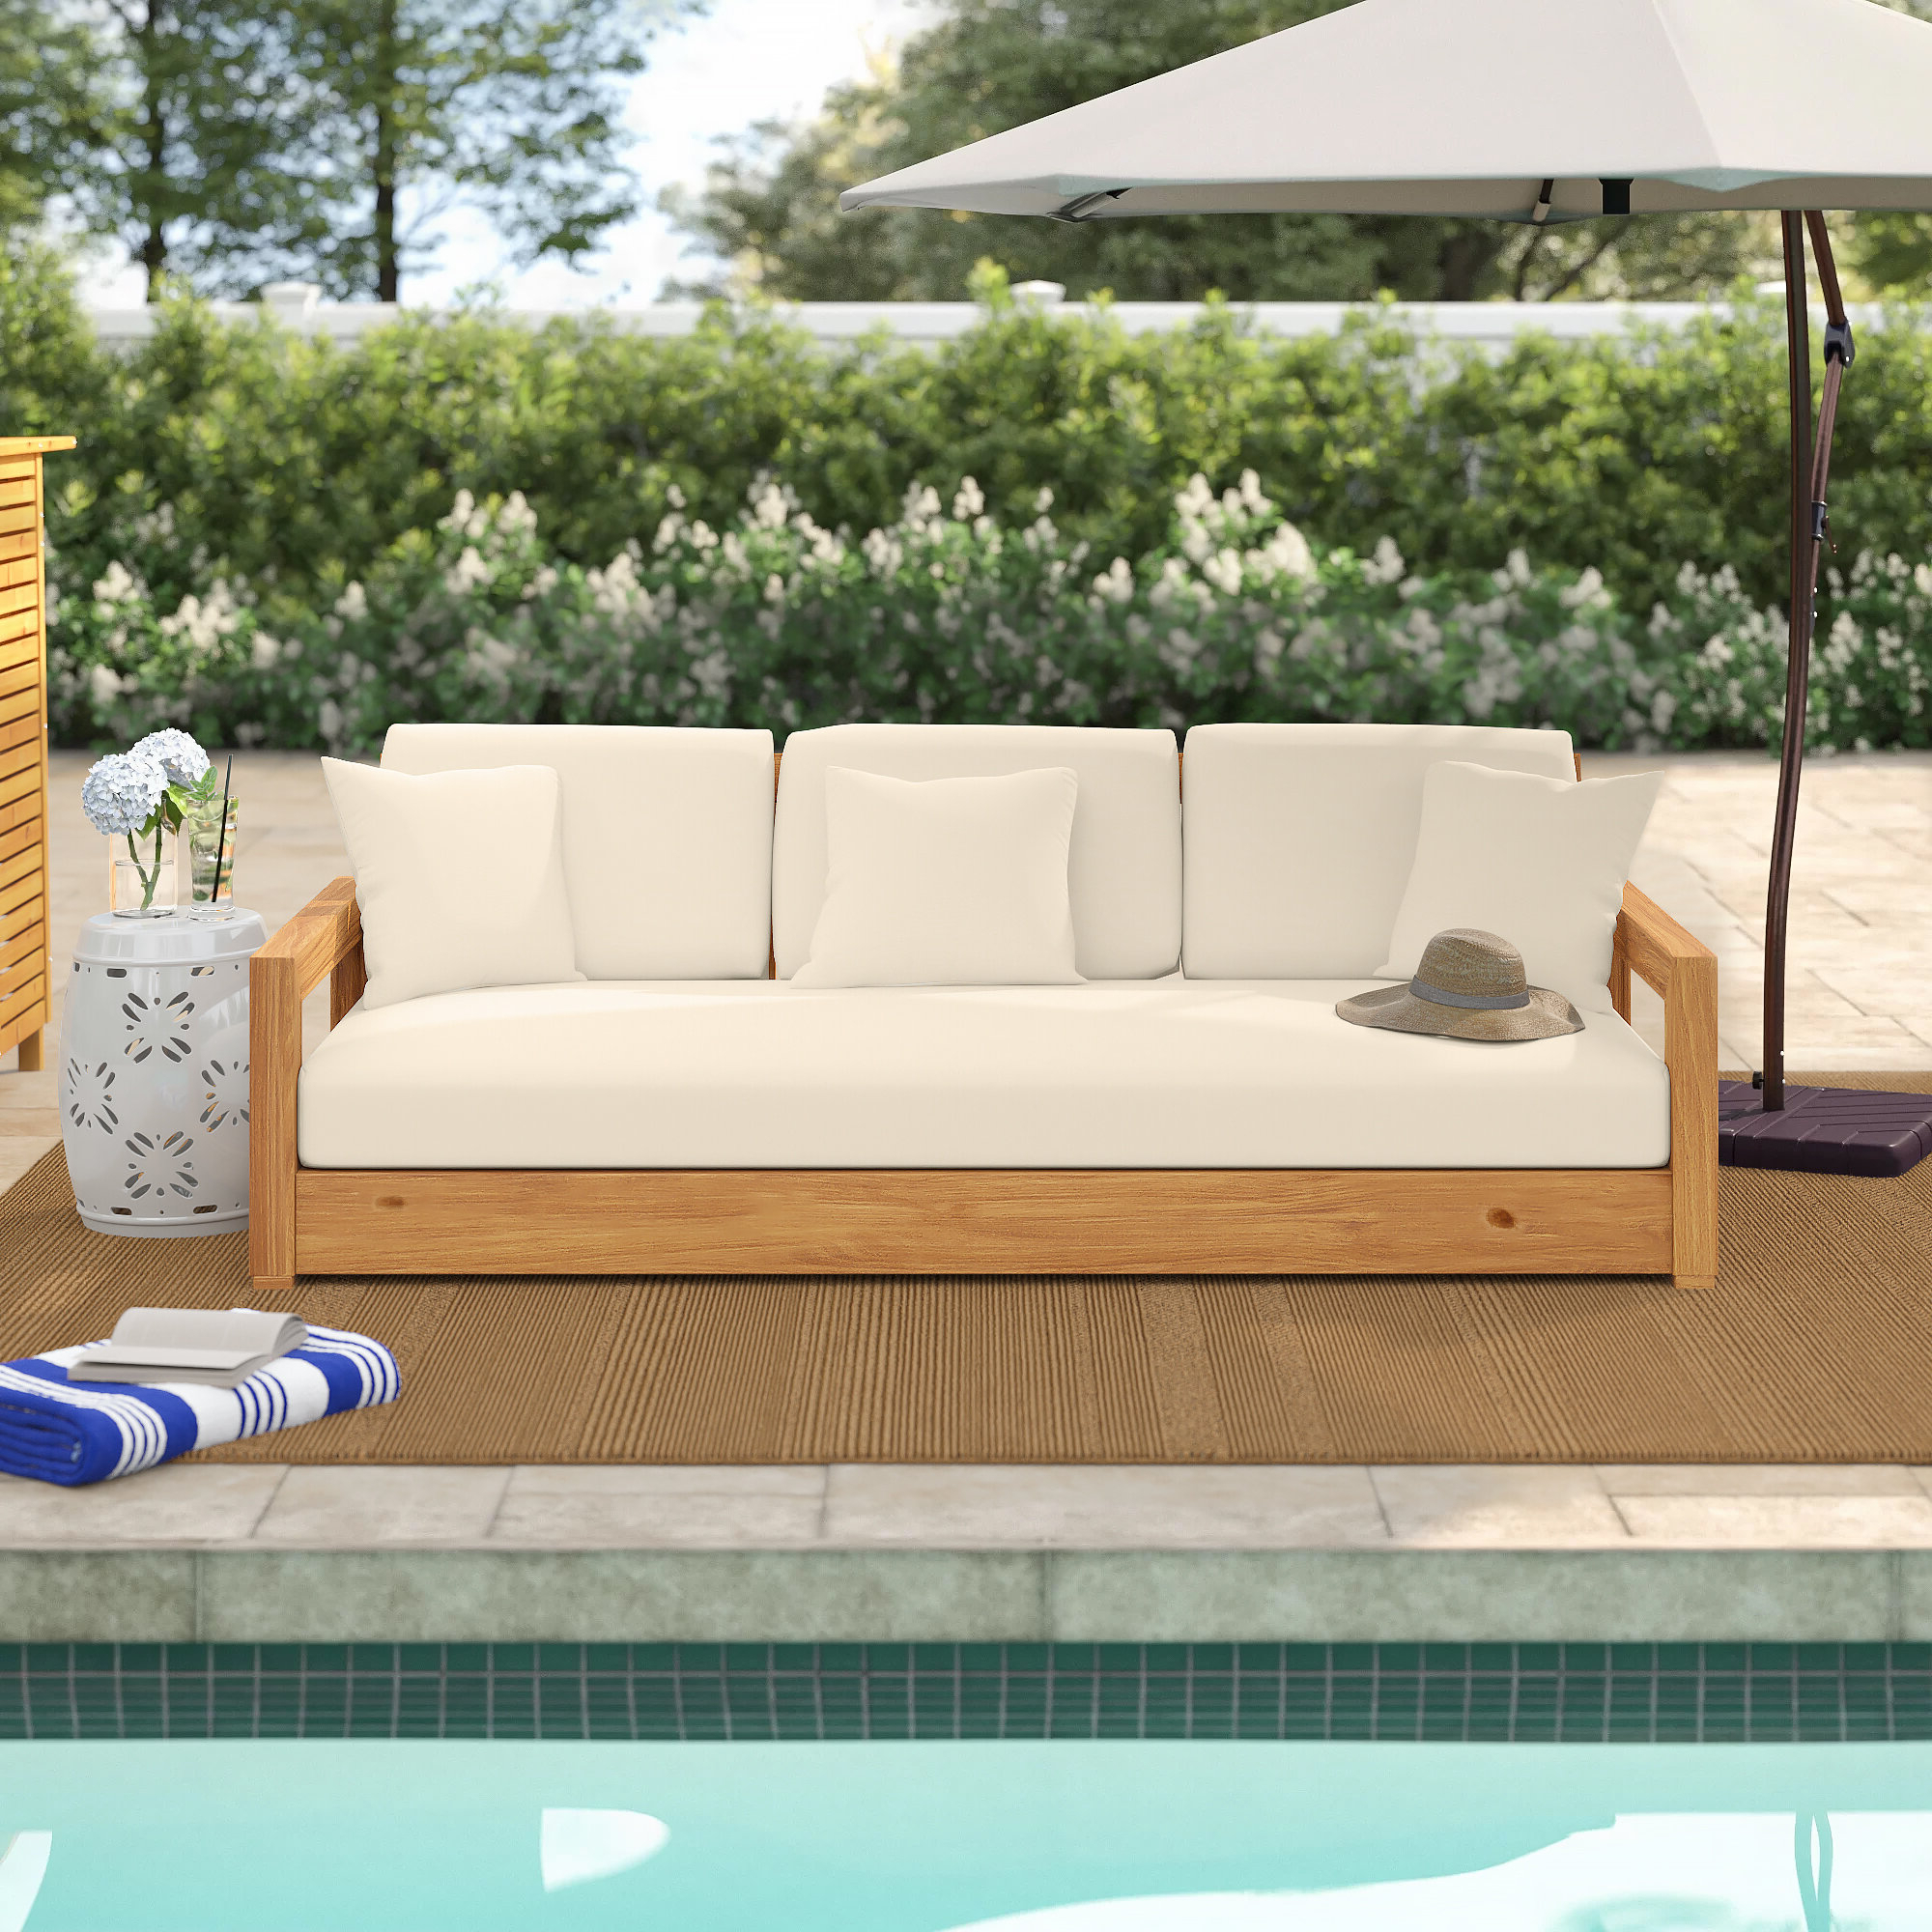 Fashionable Rosecliff Heights Lakeland Teak Patio Sofa With Cushions In Roush Teak Patio Daybeds With Cushions (View 4 of 20)